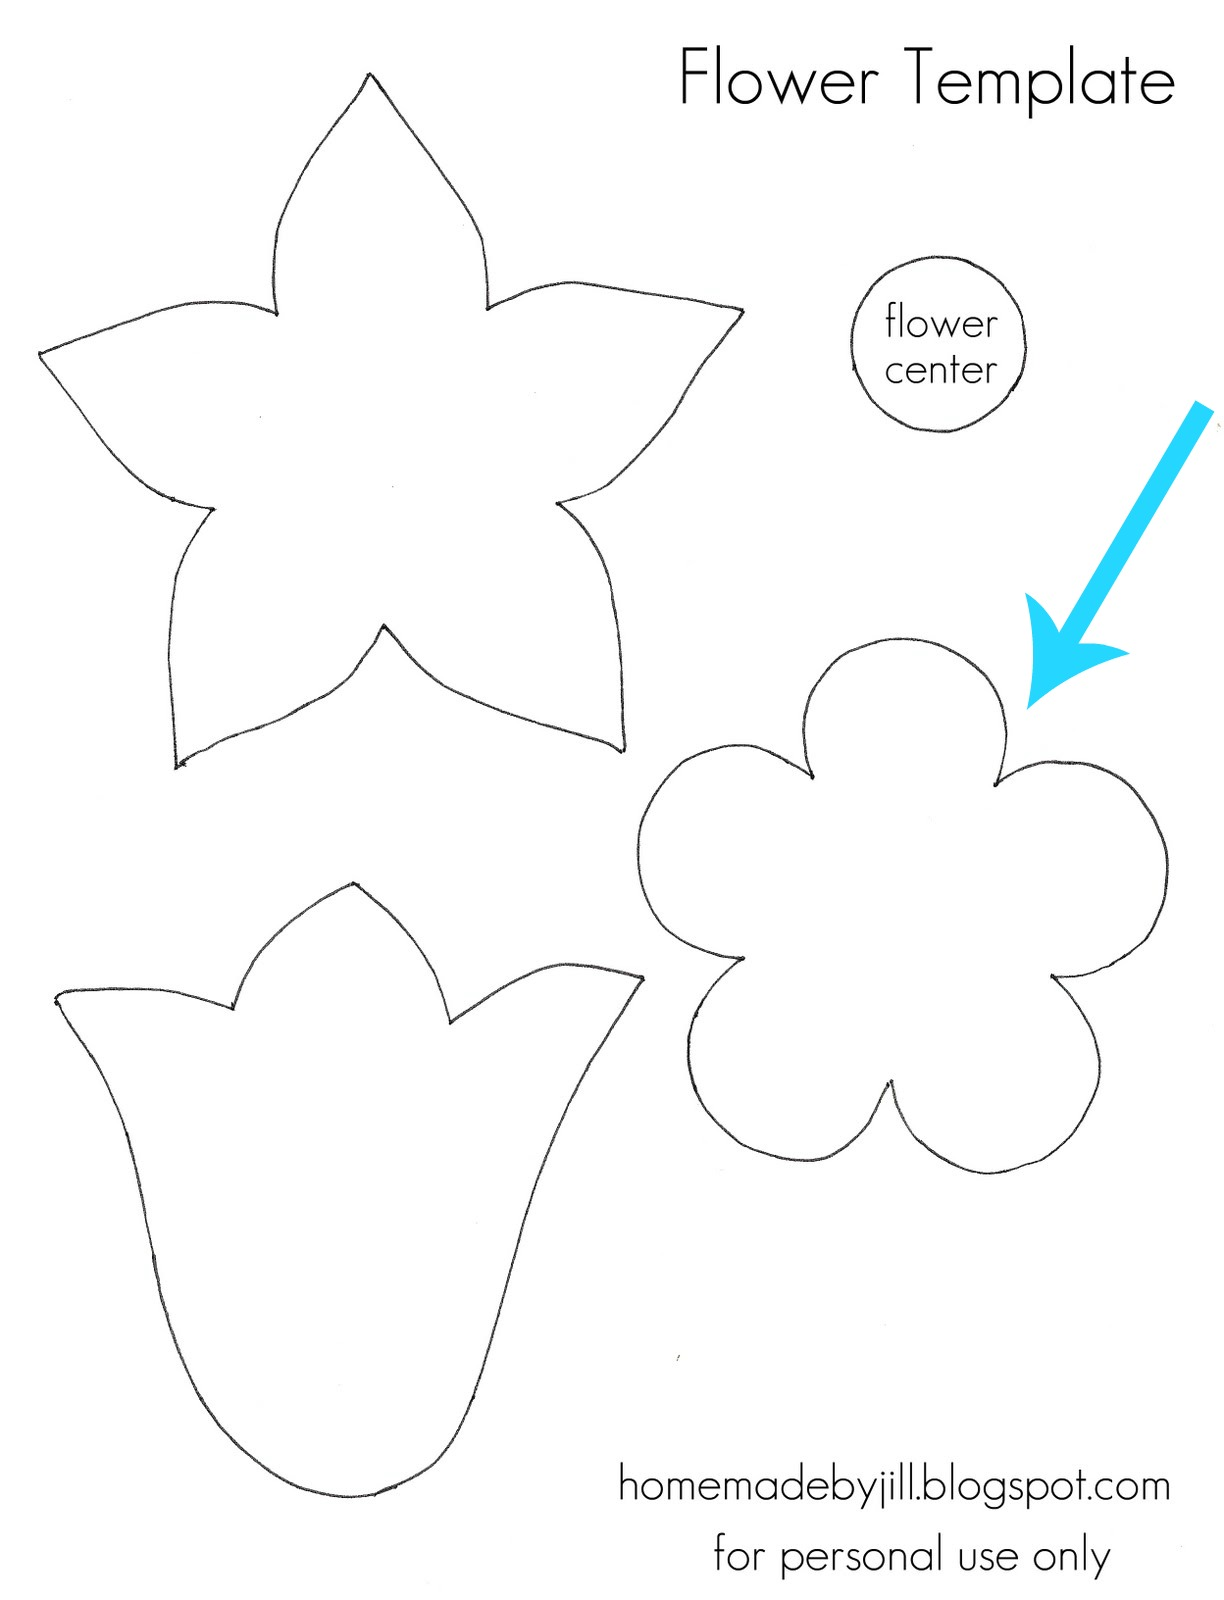 Goseekit web lsm05 for Paper cut out templates flowers